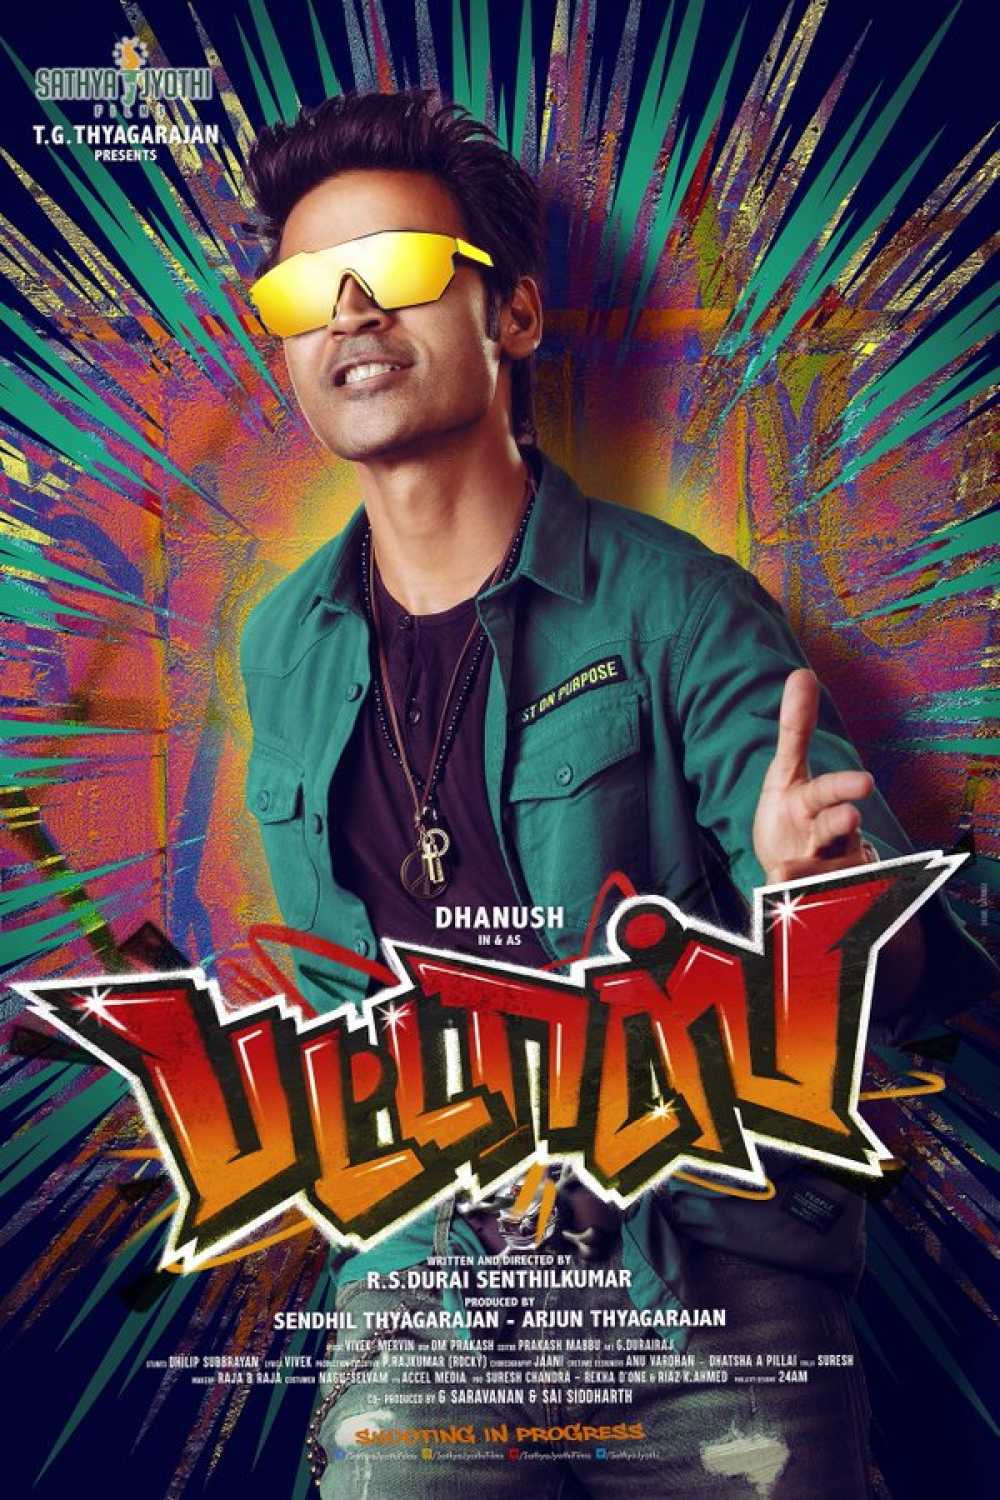 Dhanush's next titled Pattas, first look poster unveiled